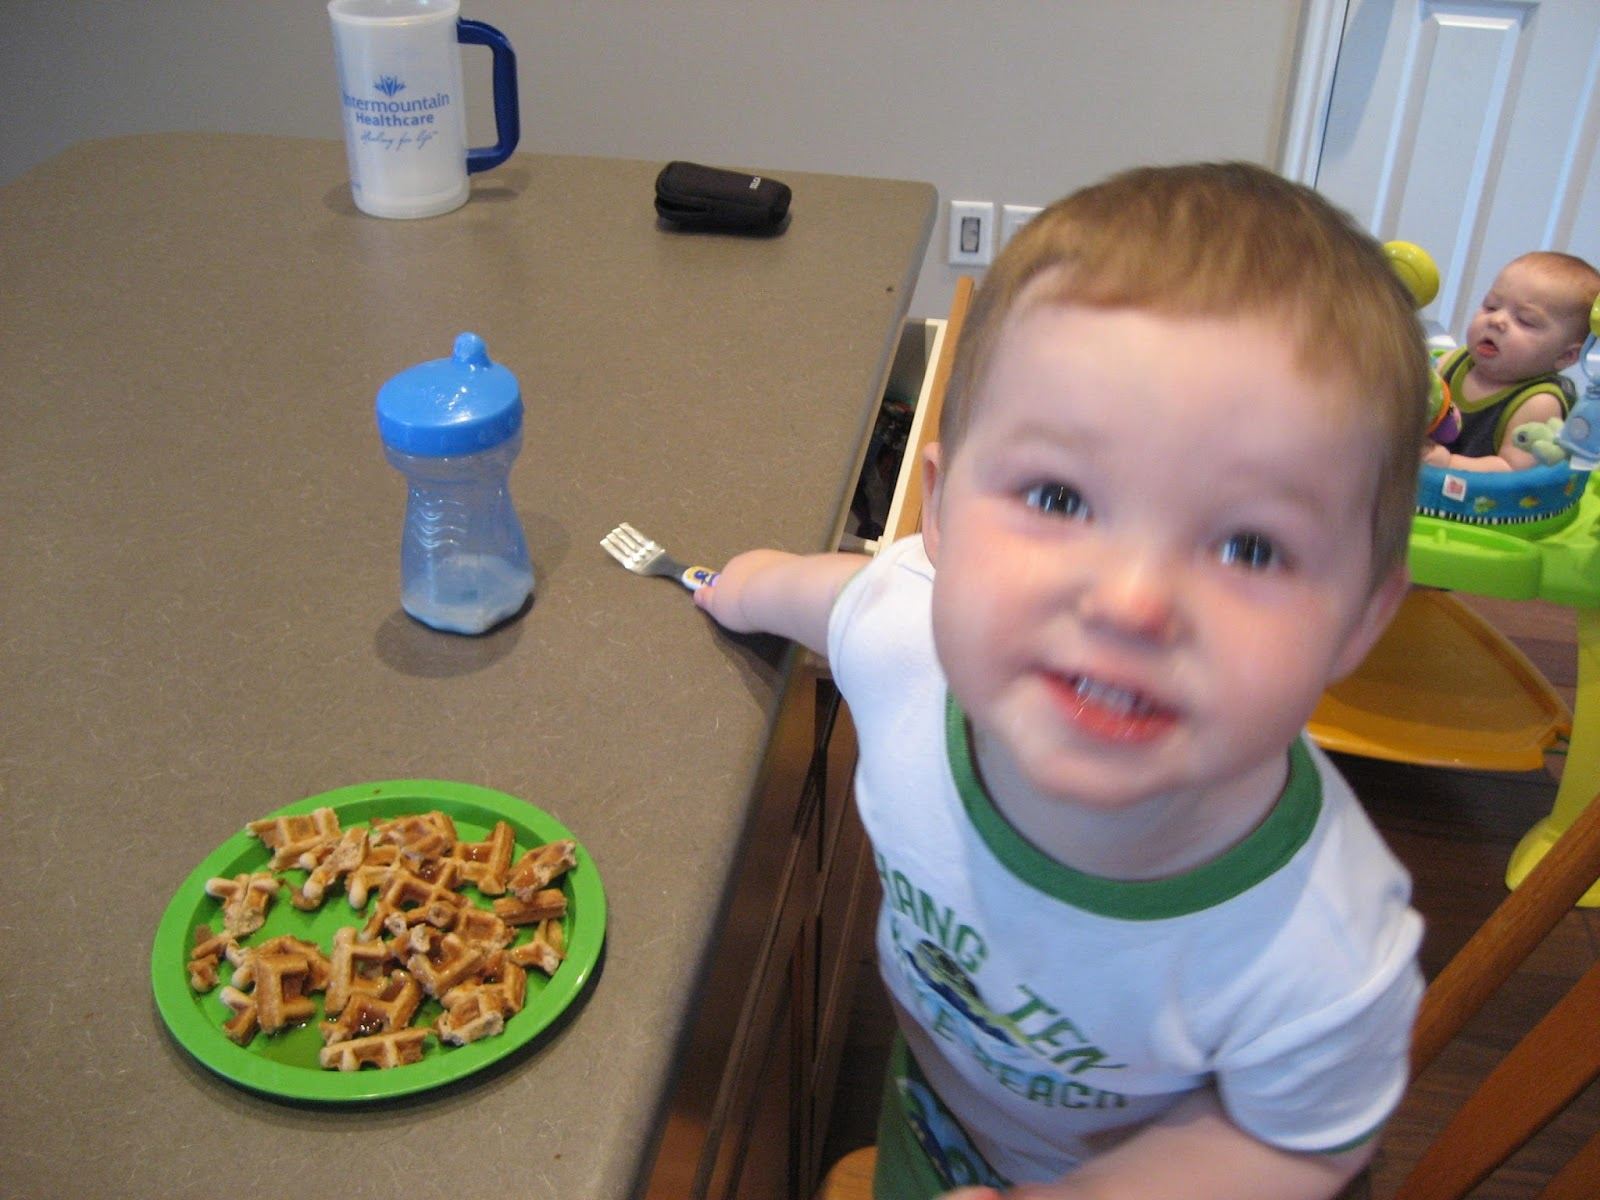 Dinner in the Life of a Dad—Coconut Flour Waffles. another picture of my son smiling while eating the waffles